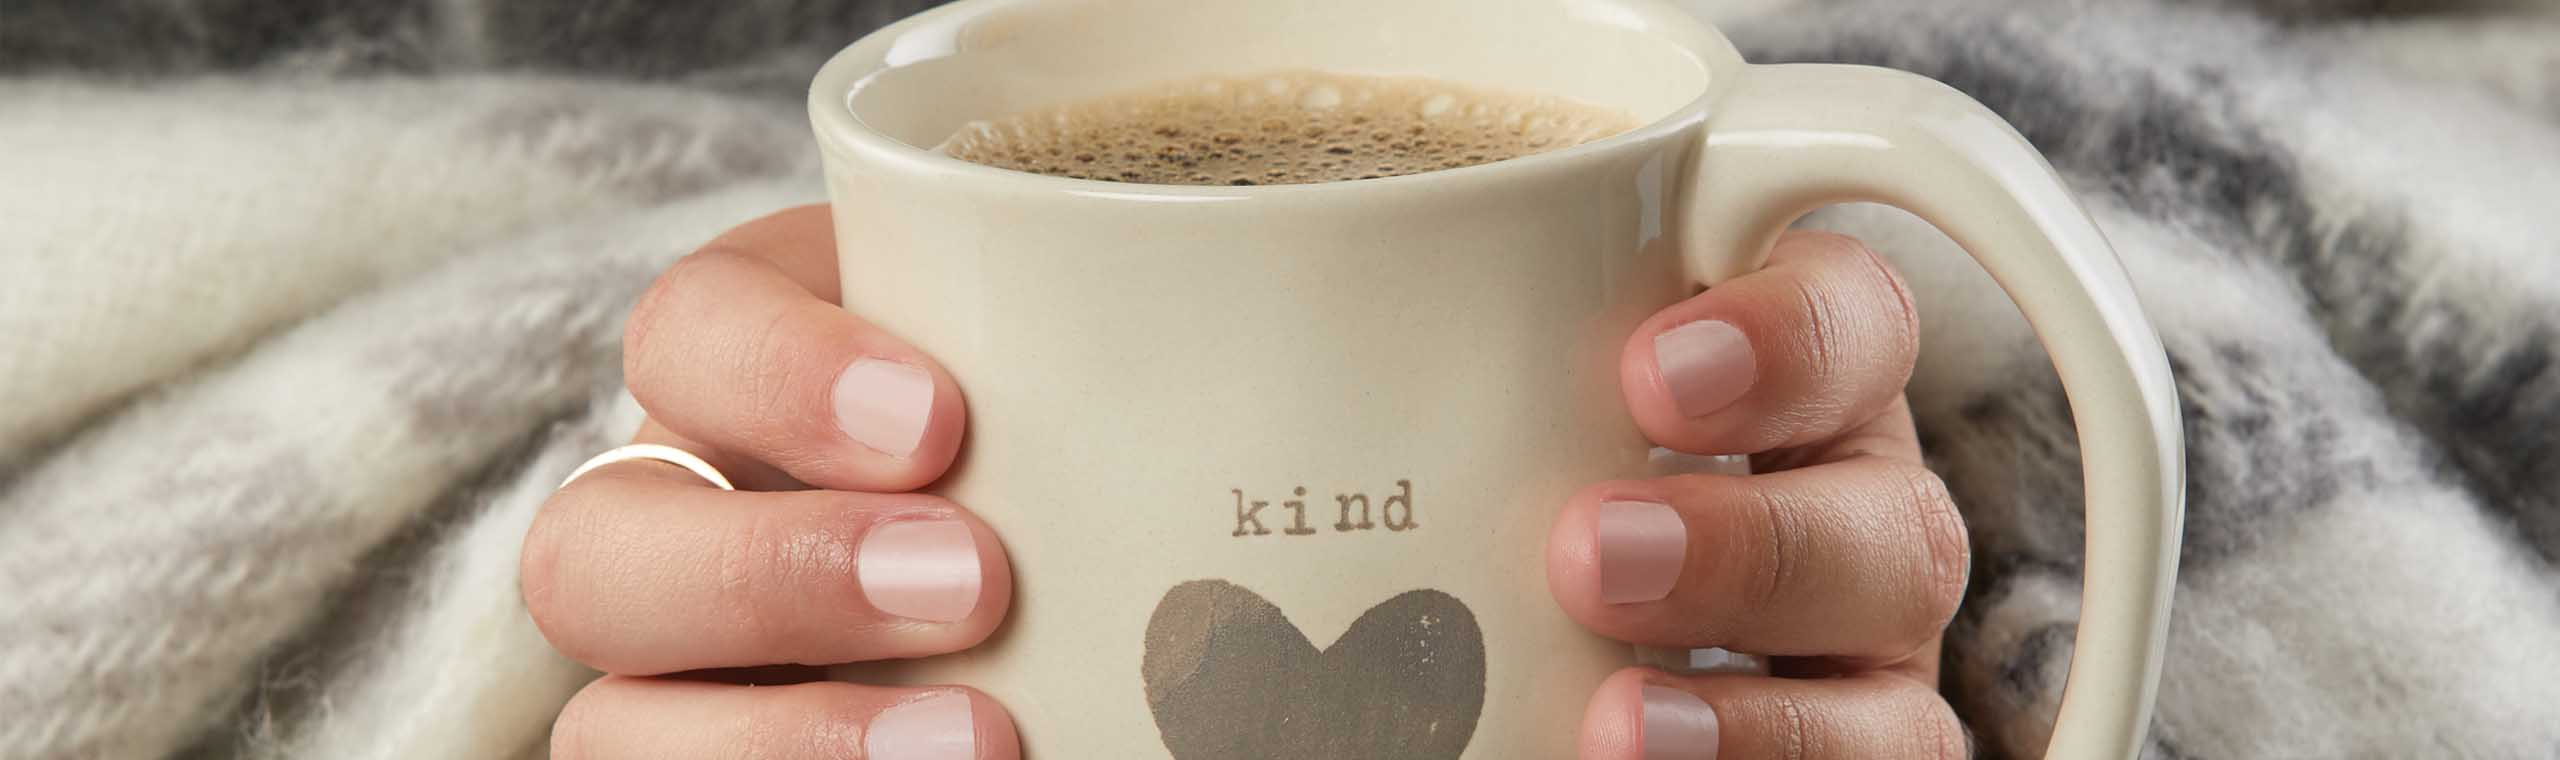 Hands around warm mug with heart decoration